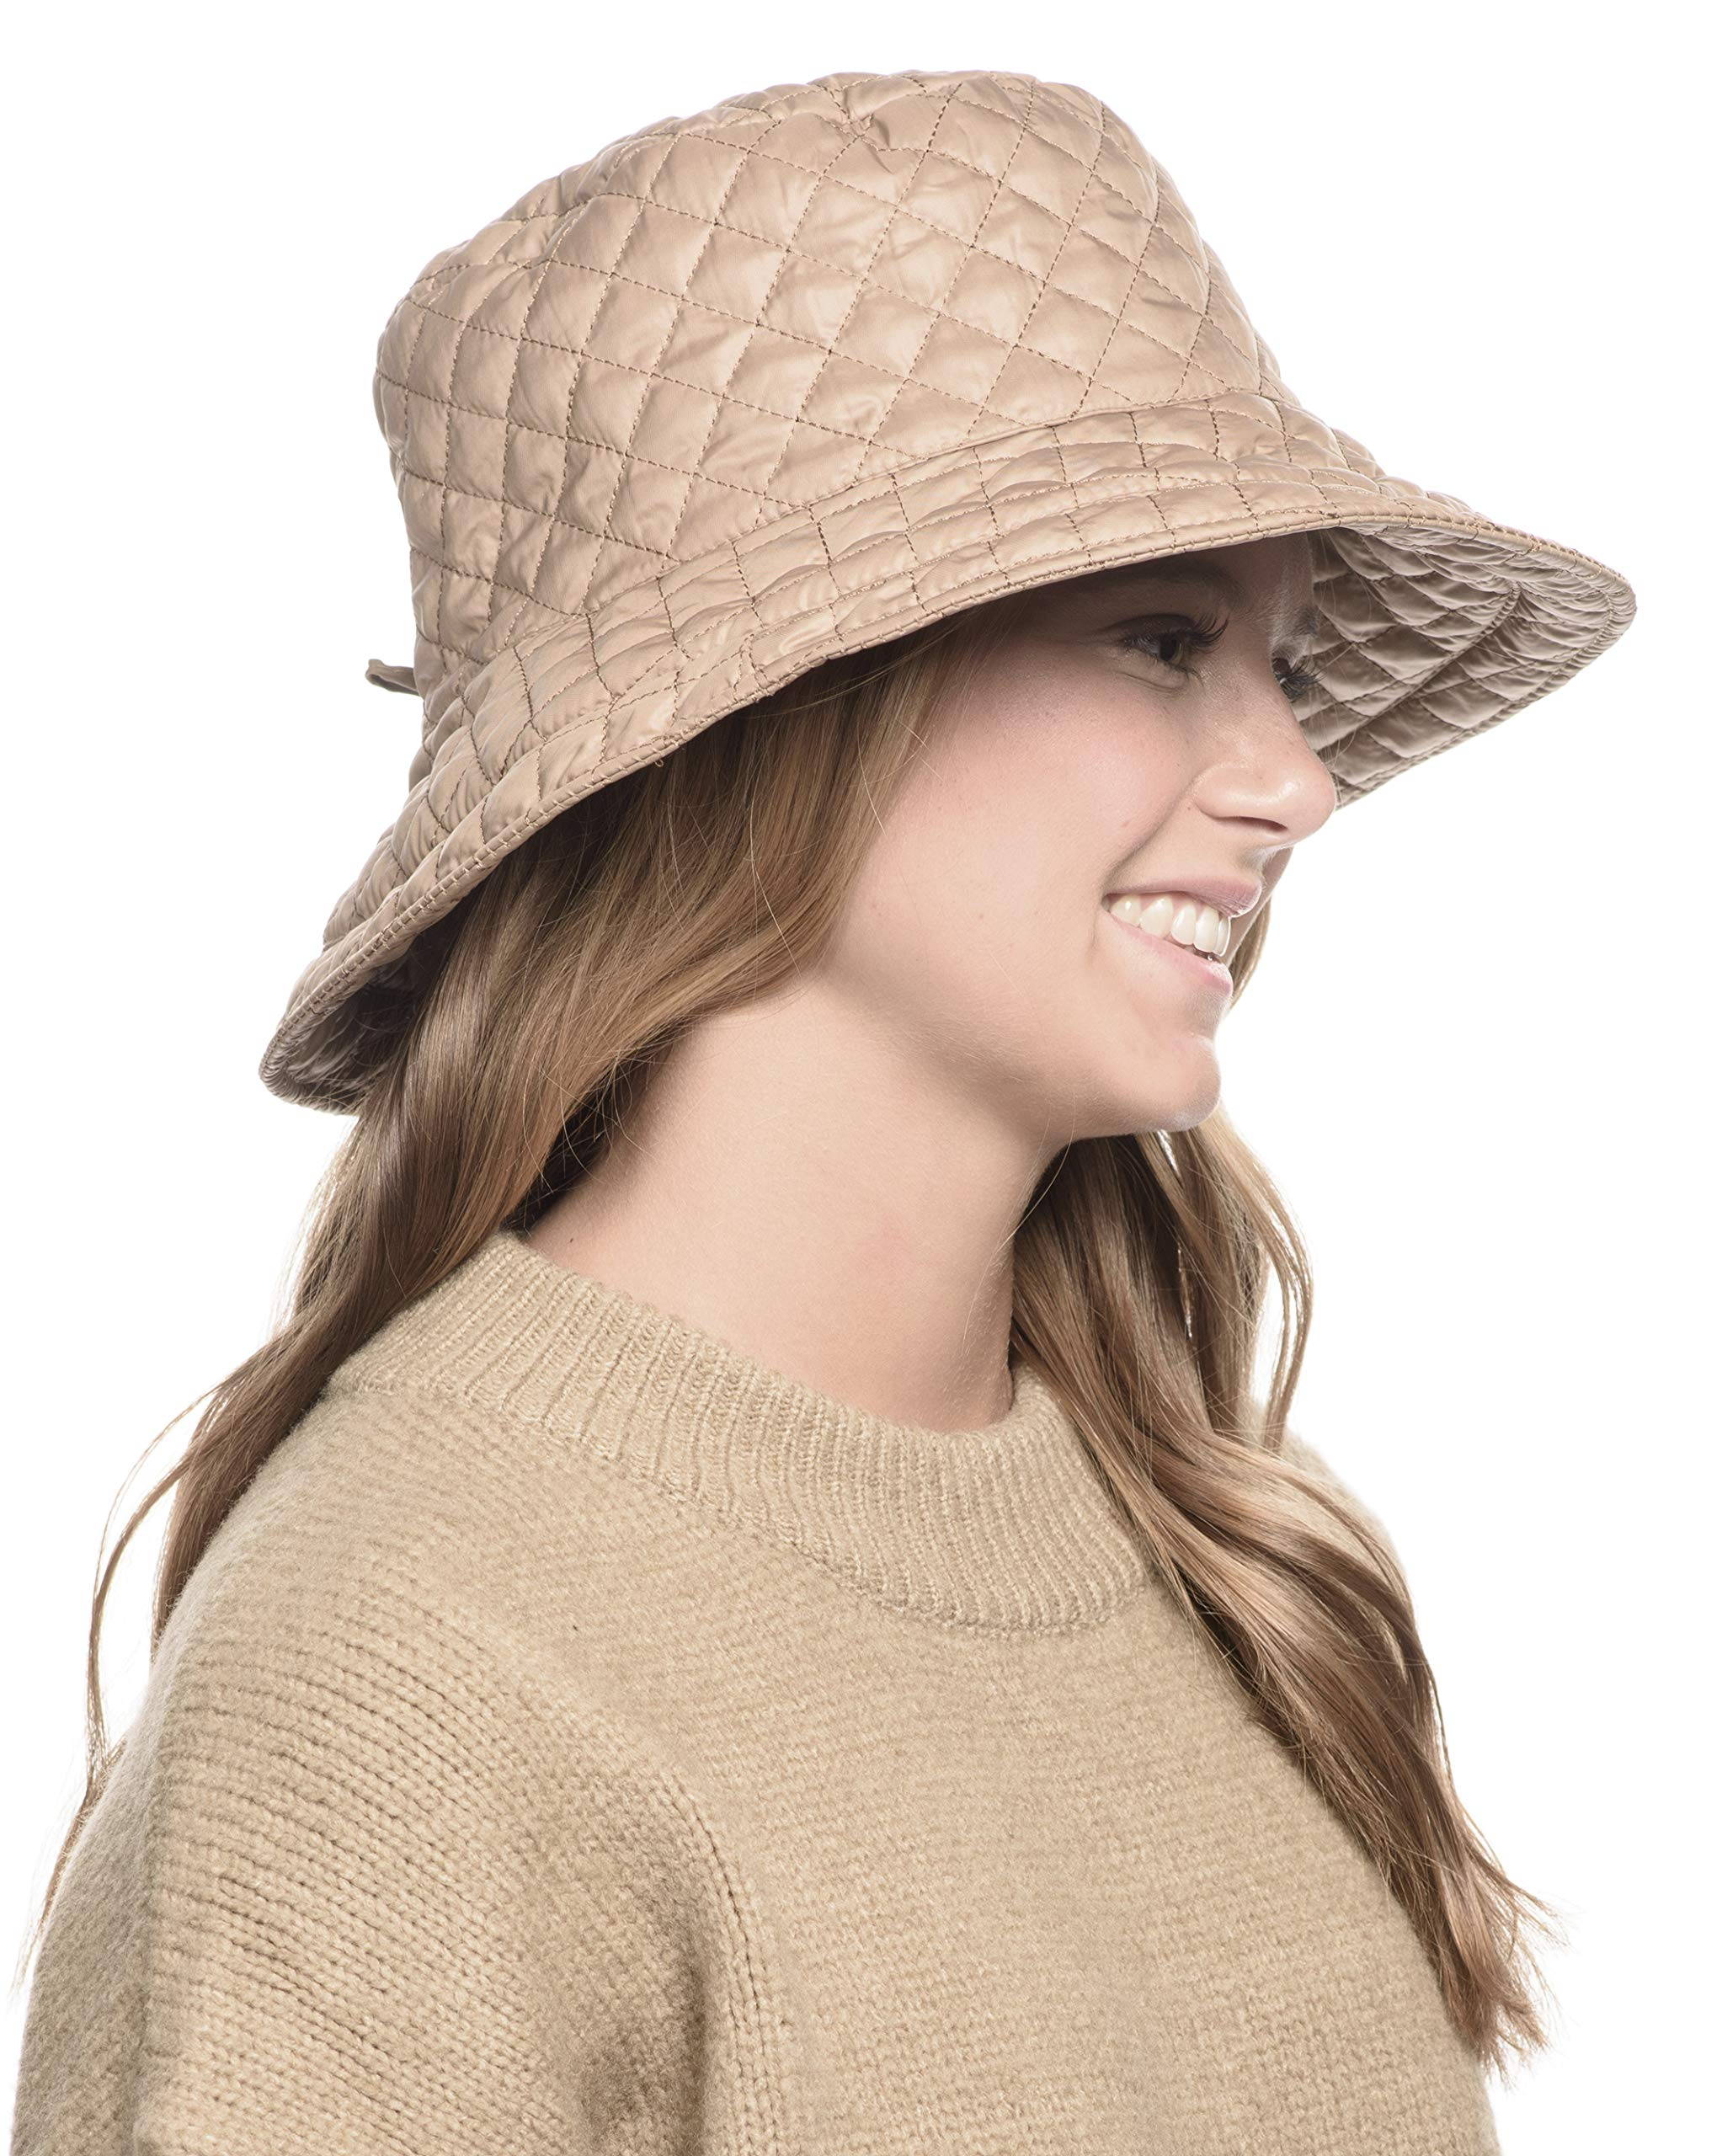 ANGELA & WILLIAM Foldable Water Repellent Quilted Rain Hat w/Adjustable Drawstring, Bucket Cap (A Khaki) by ANGELA & WILLIAM